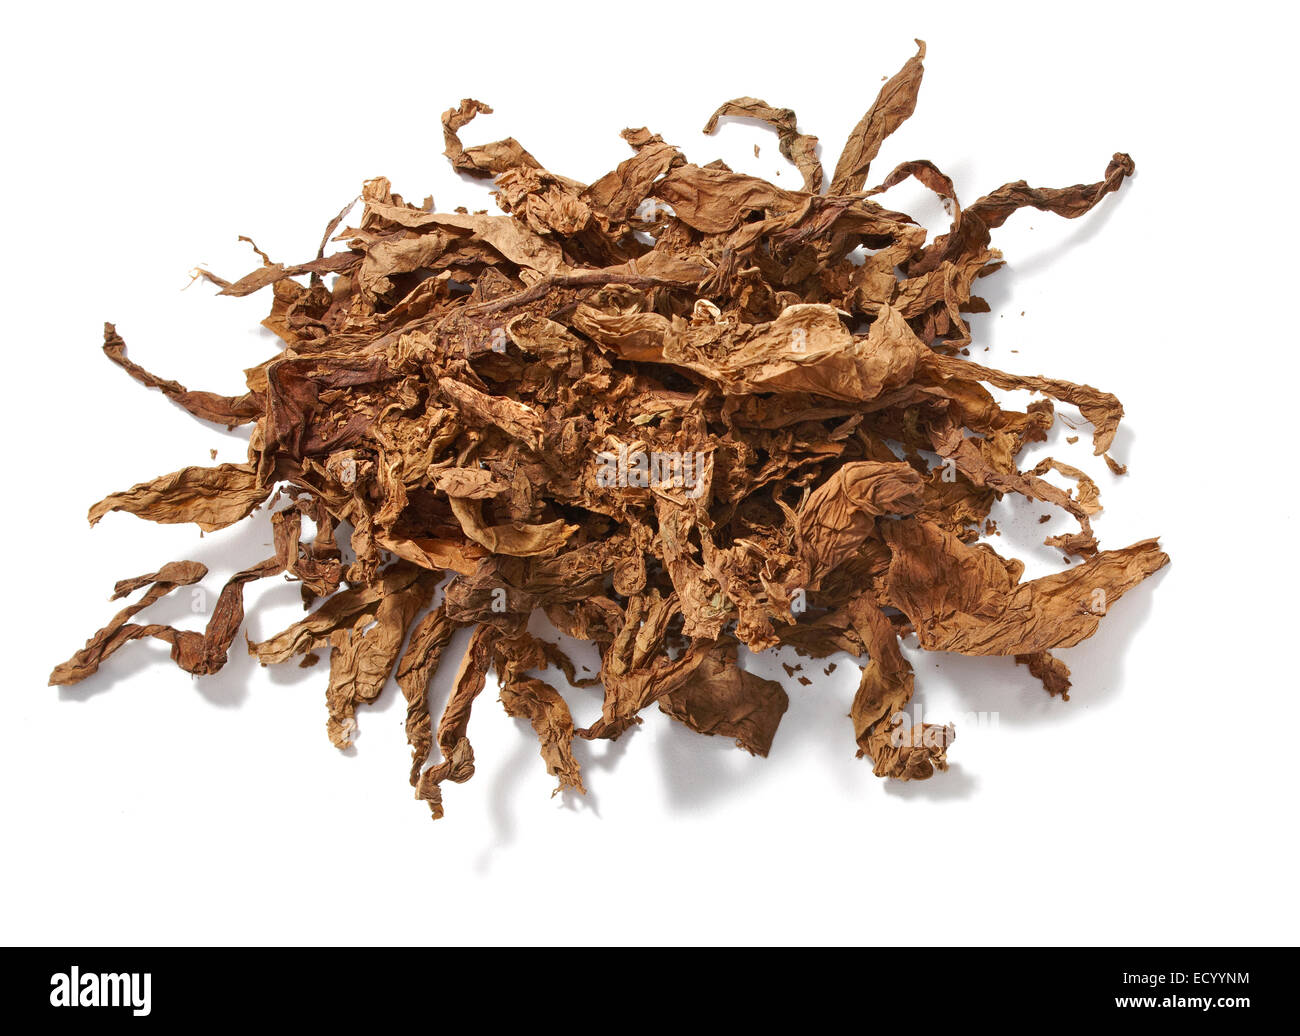 tobacco leaves - Stock Image